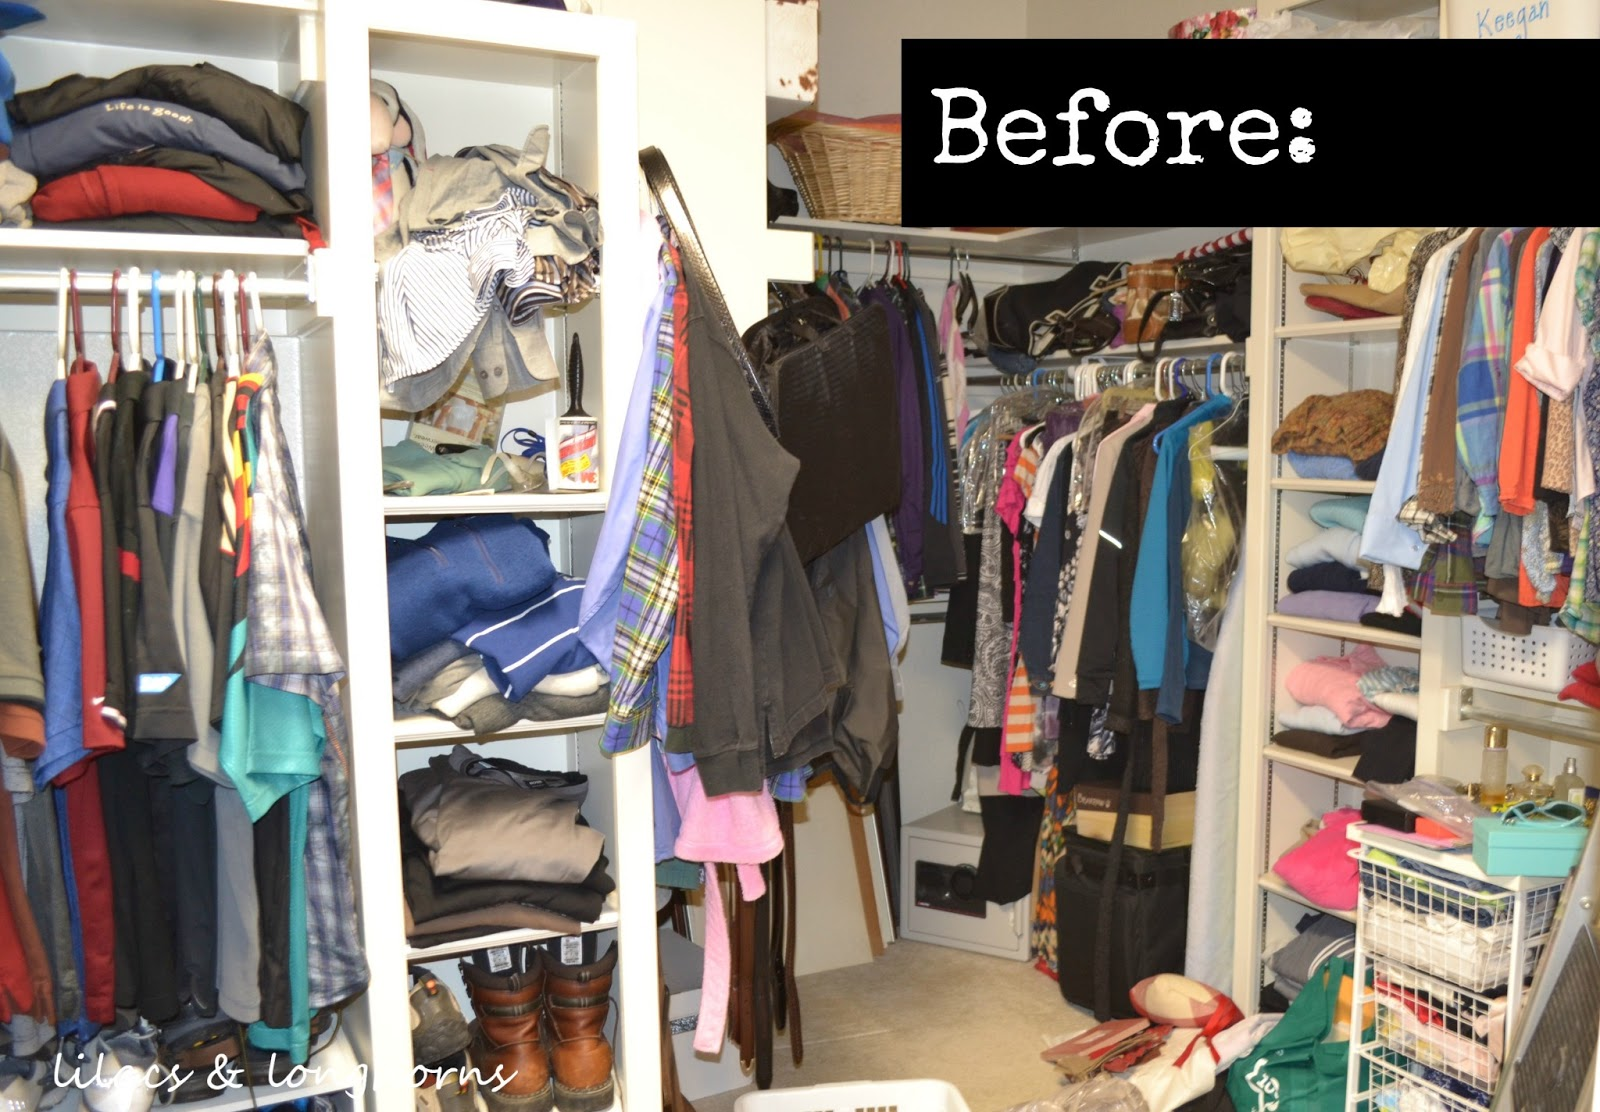 Elminate The Chaos And Clutter Of A Messy Closet By Following These Simple Steps